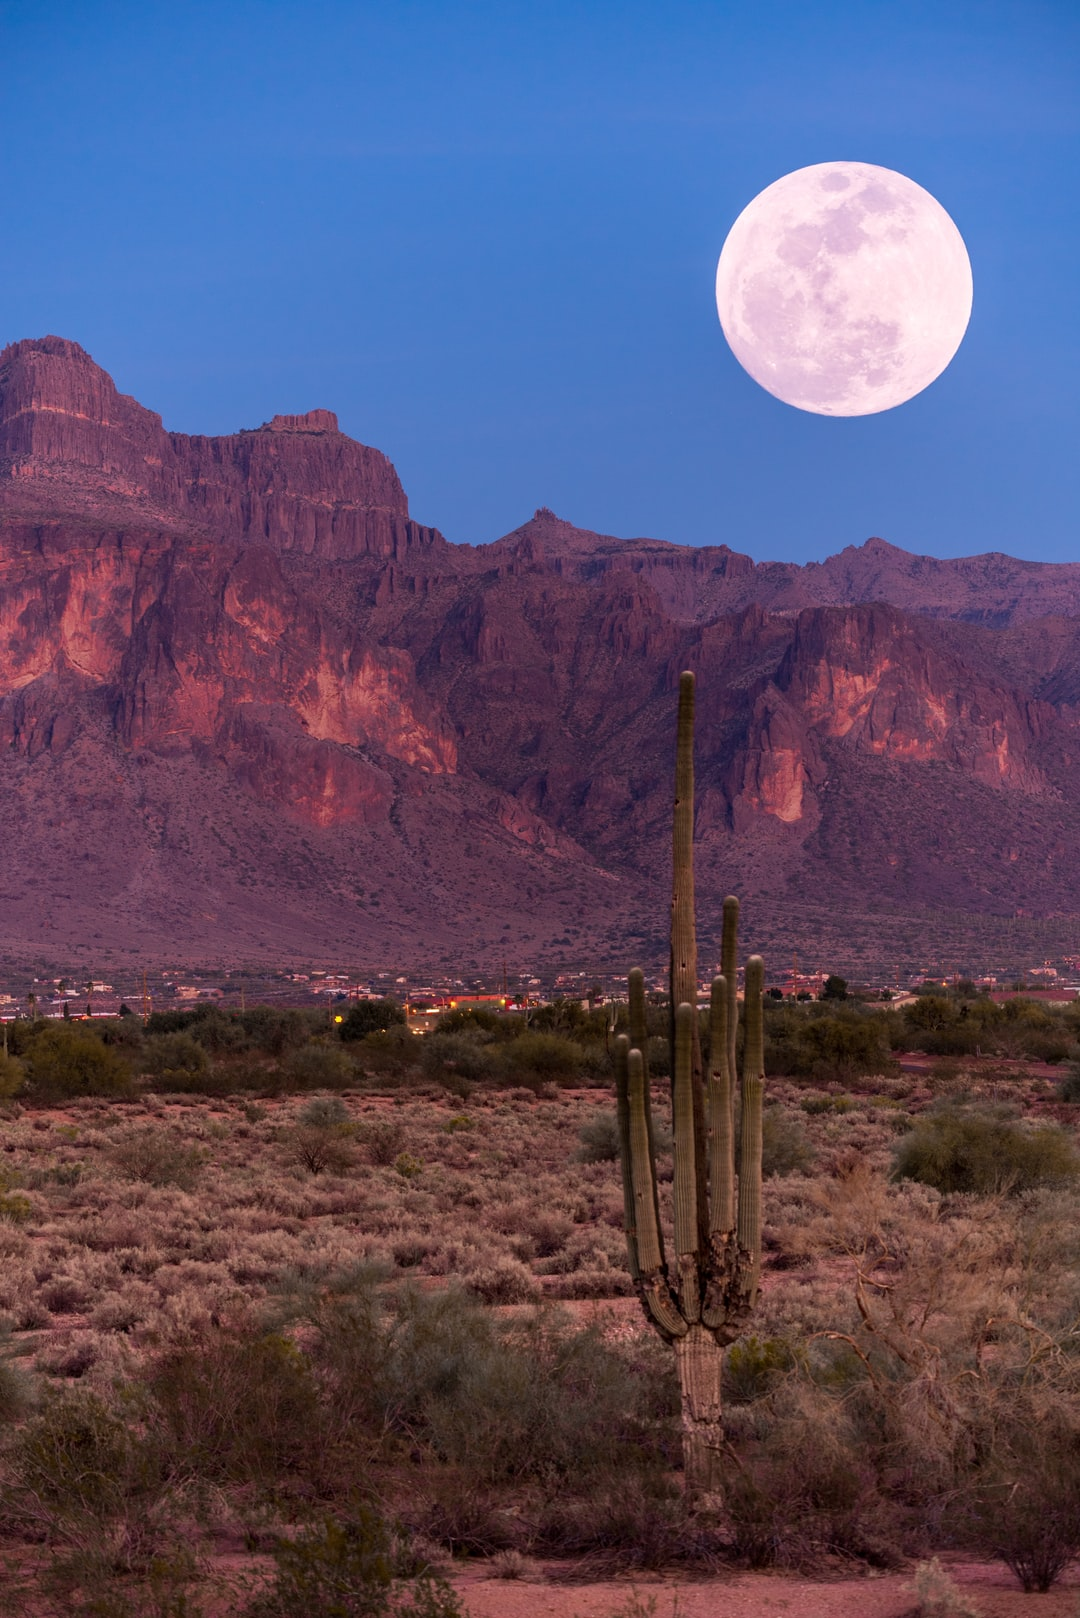 End of the golden hour and start of the Lunar hour as the Full moon rises over the Superstitions overlooking Apache Junction